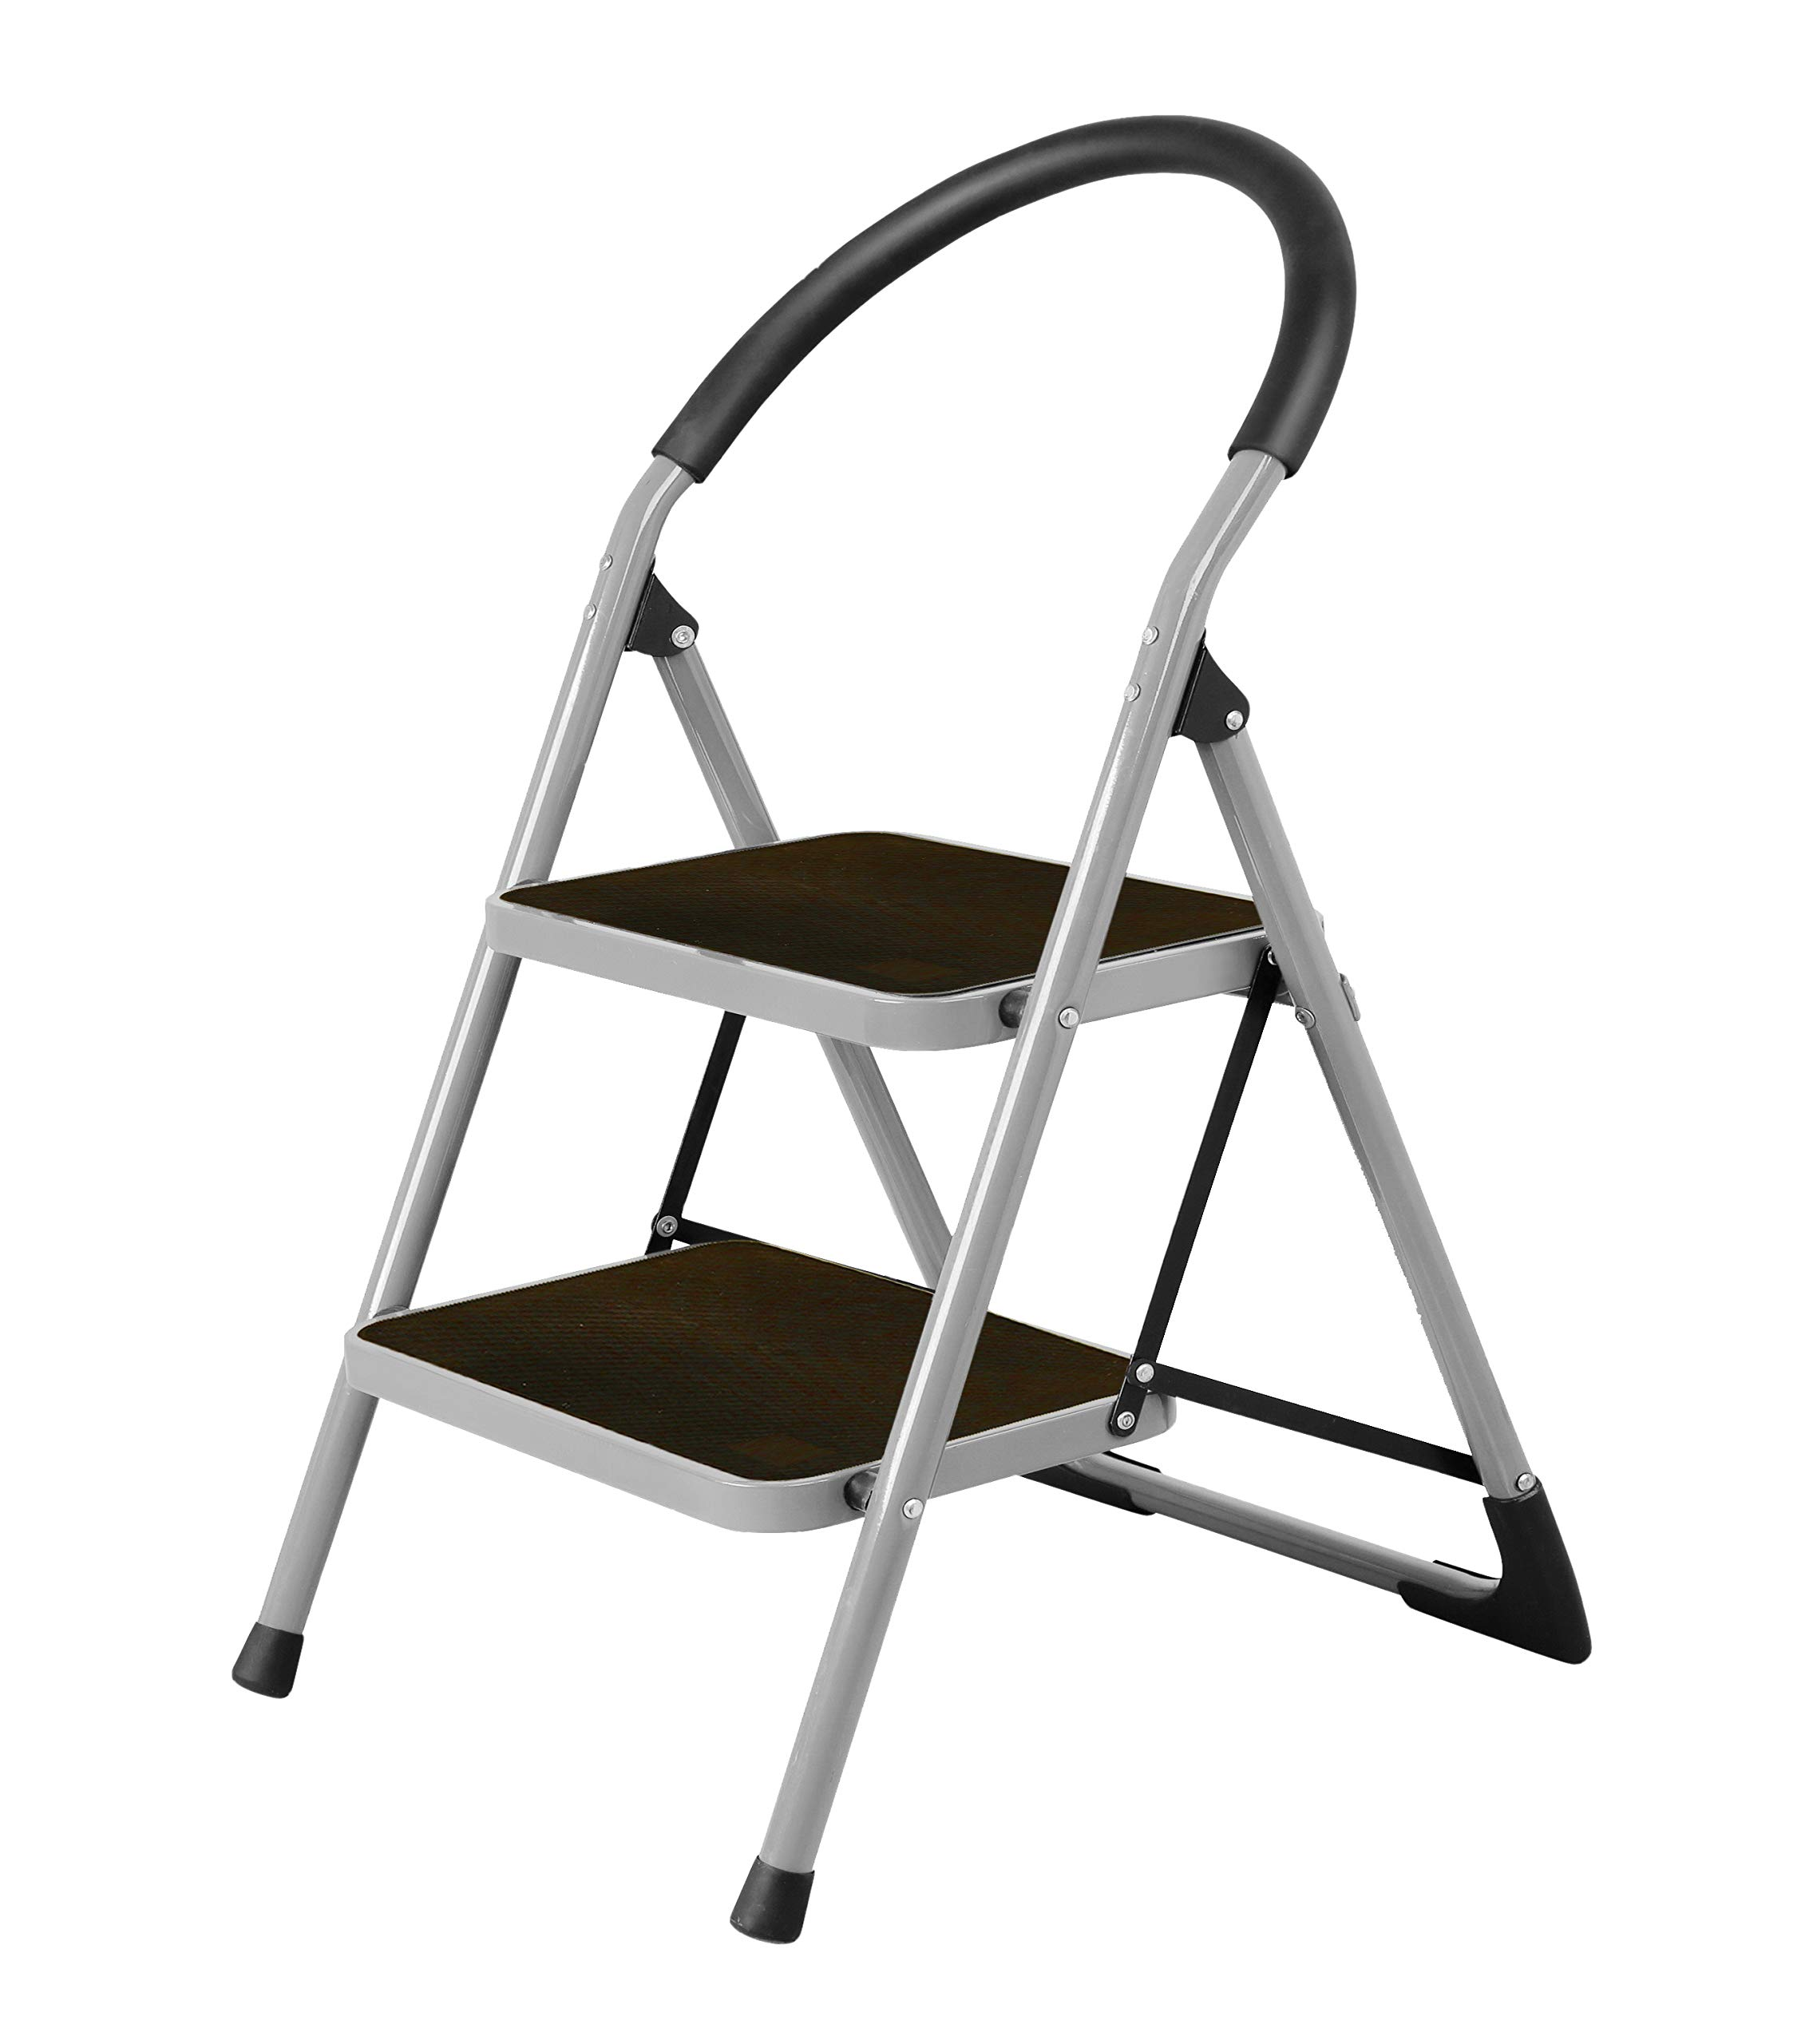 CASTOOL Steel Stepladders with Handgrip Anti-Slip Sturdy and Wide Pedal Steel Ladder 330lbs White and Black Combo 2-Feet 2 Step Ladder Folding Step Stool